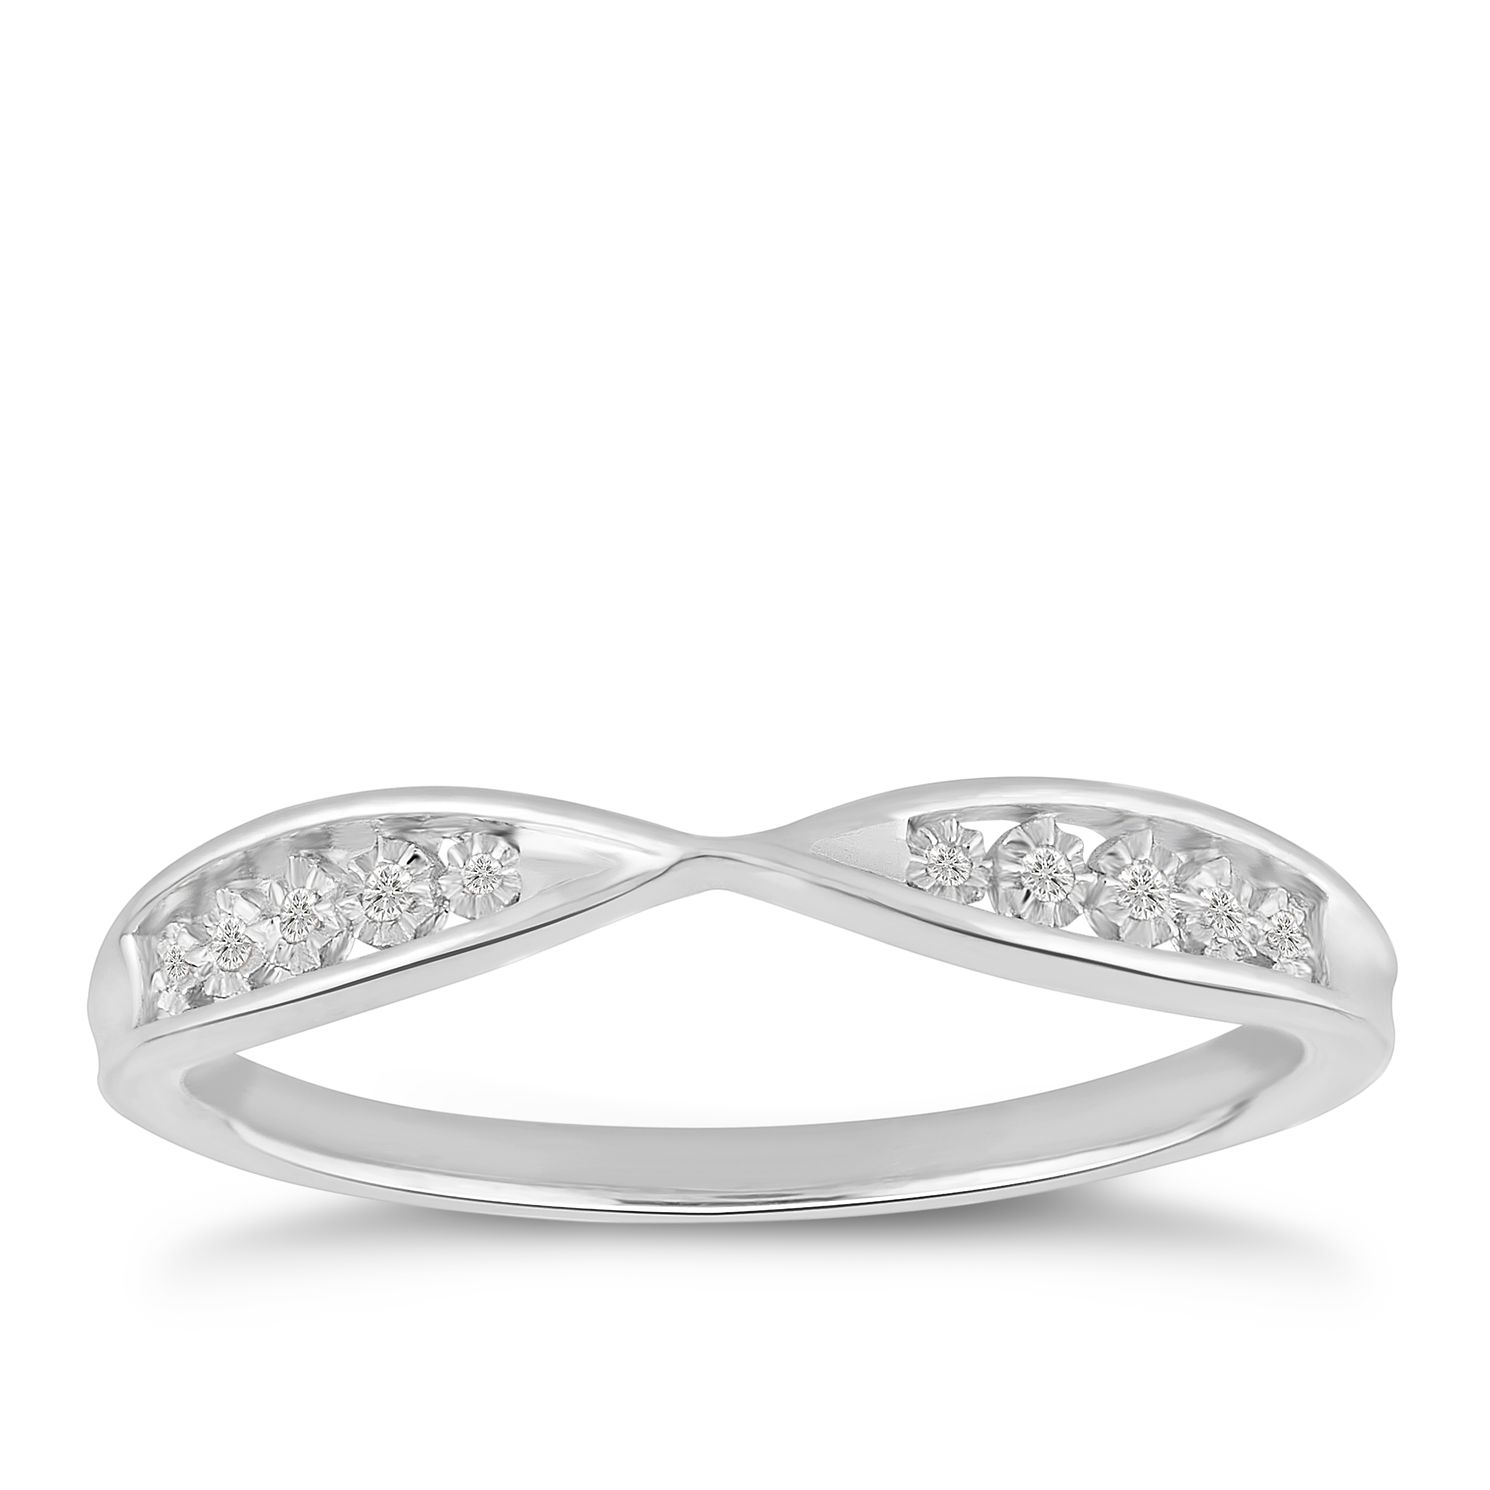 9ct White Gold Illusion Set Diamond Infinity Ring - Product number 4915178